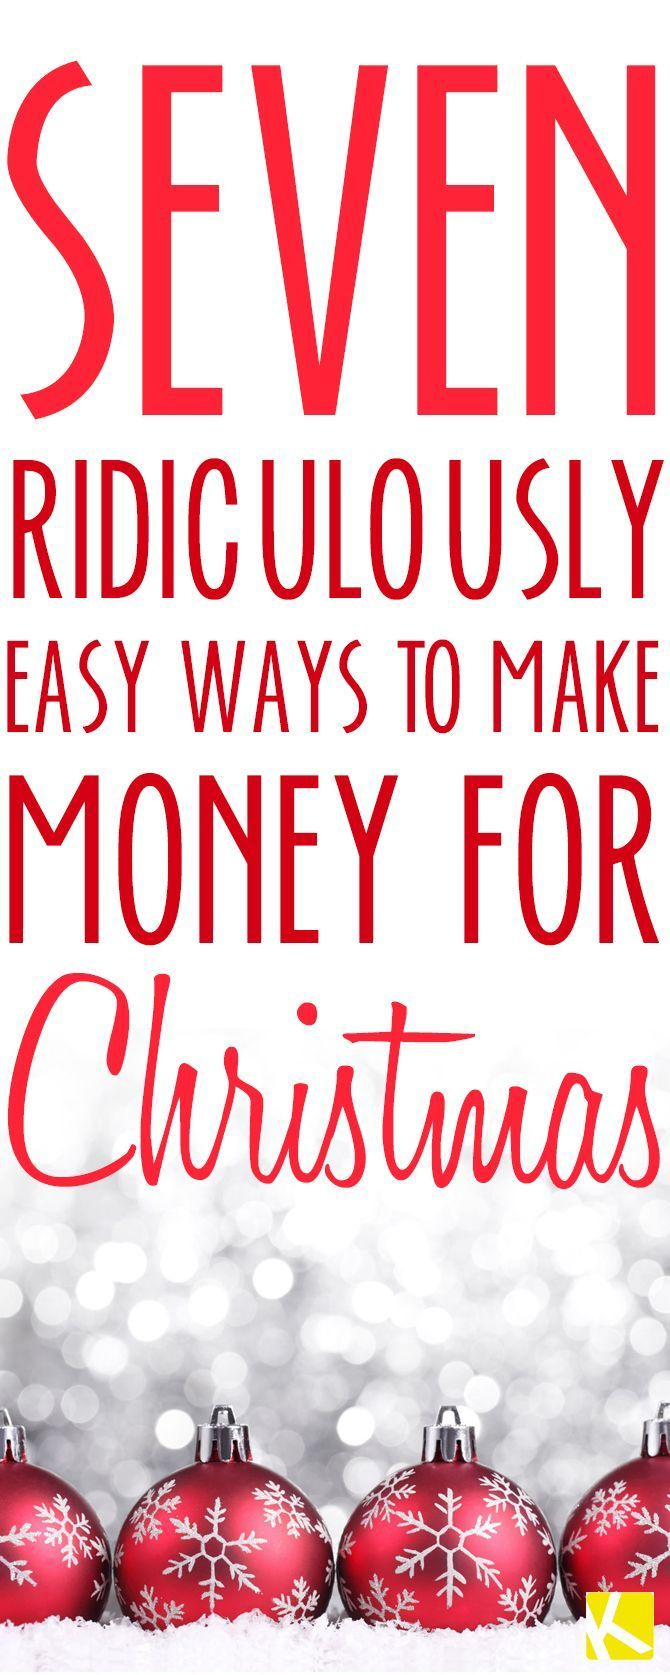 7 Ridiculously Easy Ways to Make Money for Christmas make money for christmas…